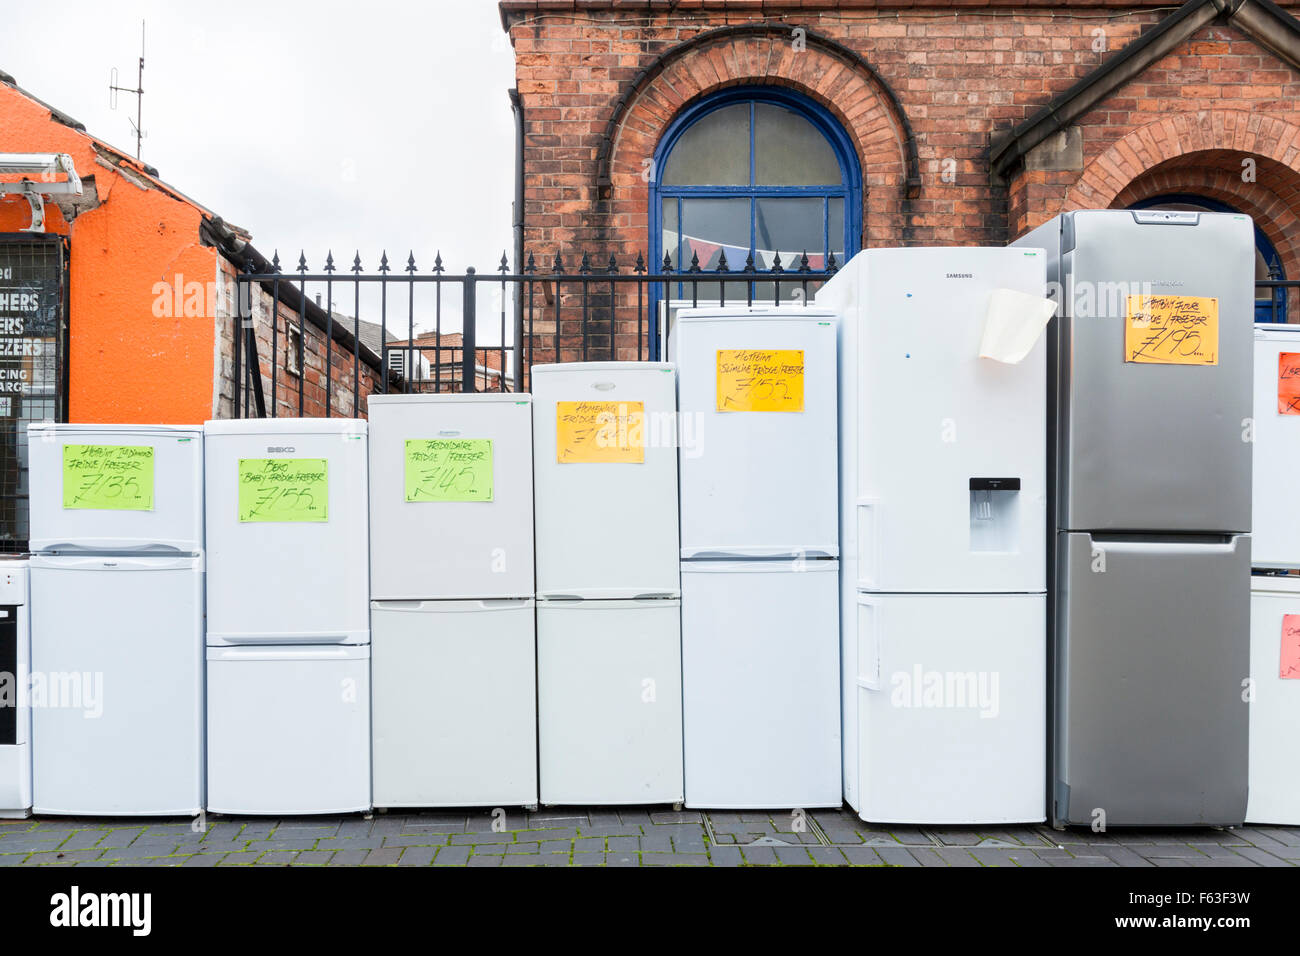 Shop selling second hand fridge freezers and other used white goods on a high street in a UK town centre, Netherfield, - Stock Image